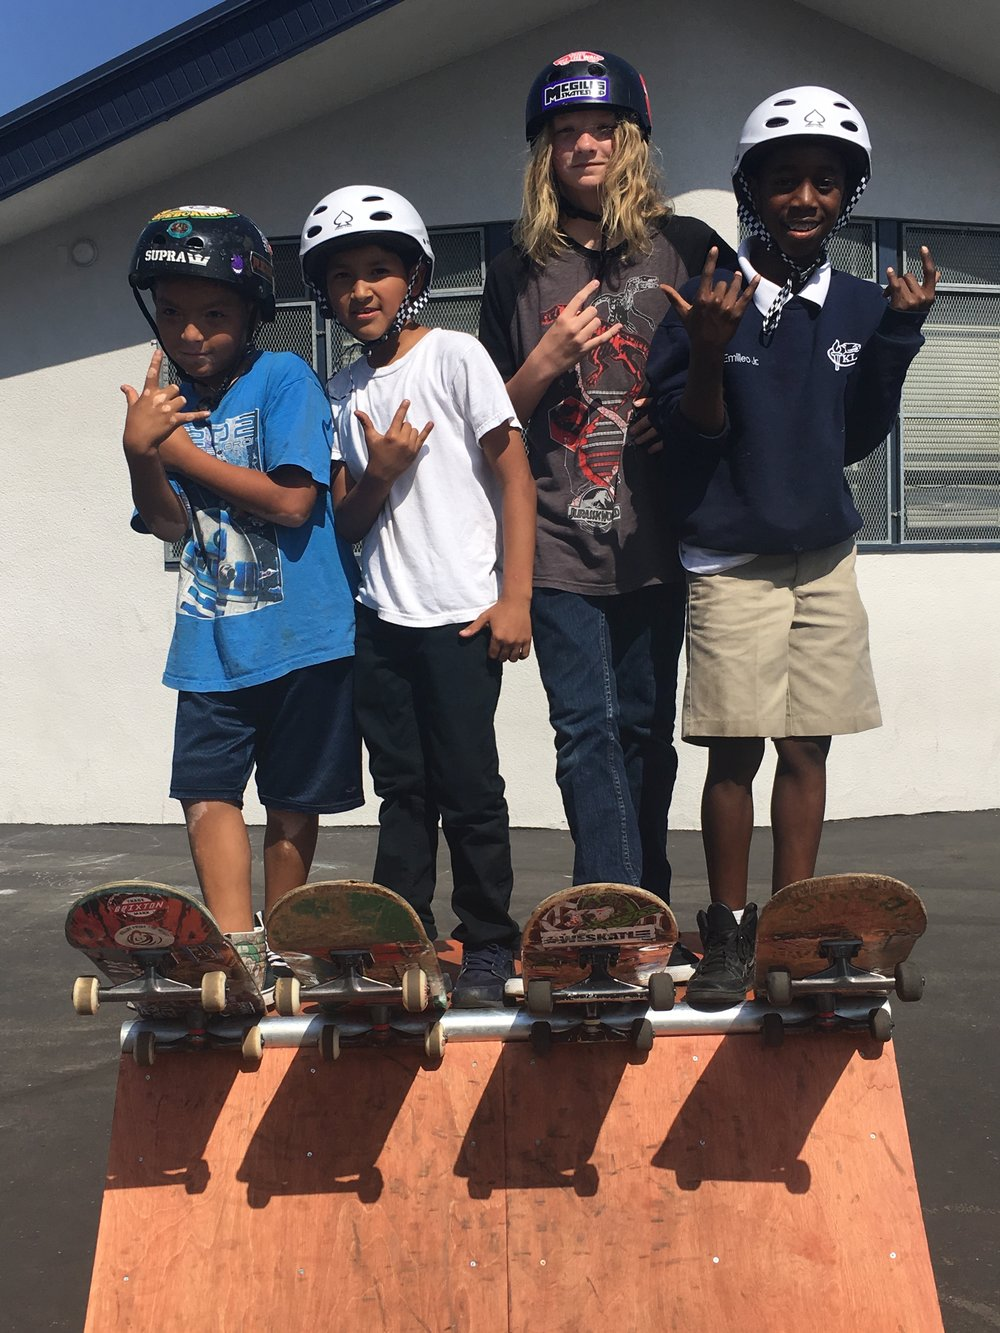 Over 40 boys and girls of from The Keiller Leadership Academy received a full skateboard setup along with a helmet for the Holidays from RFTH. Hope they have a Rollin', Merry Christmas!